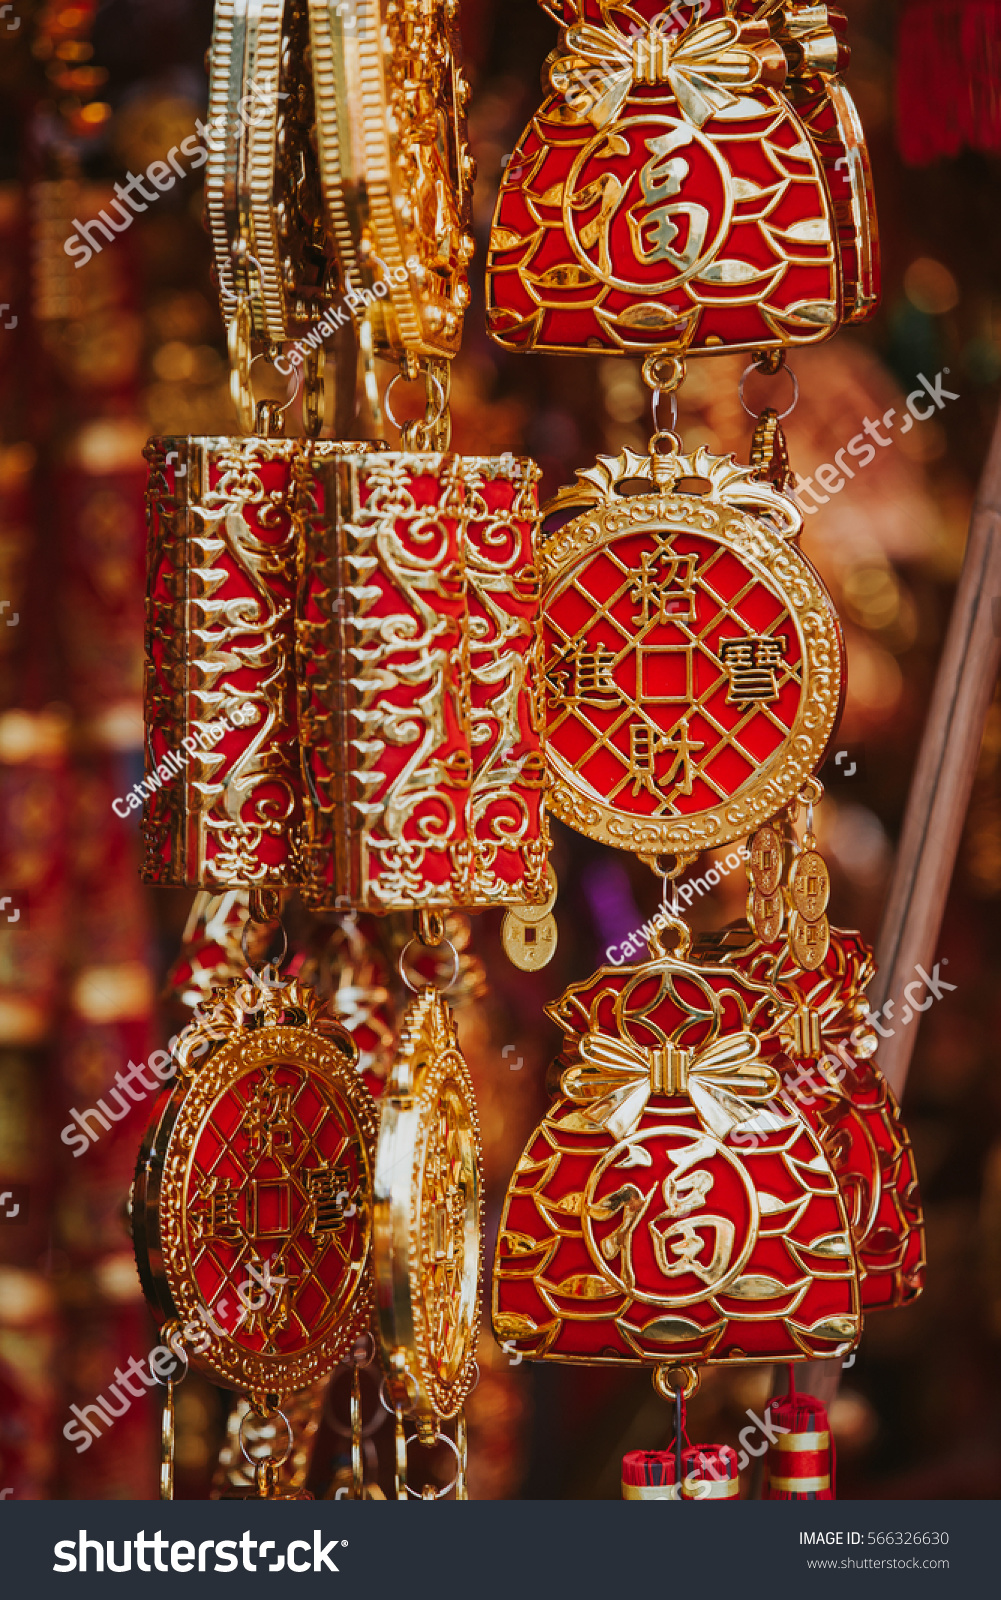 Chinese new year 2017 decorations stock photo 566326630 - New year decoration ideas ...